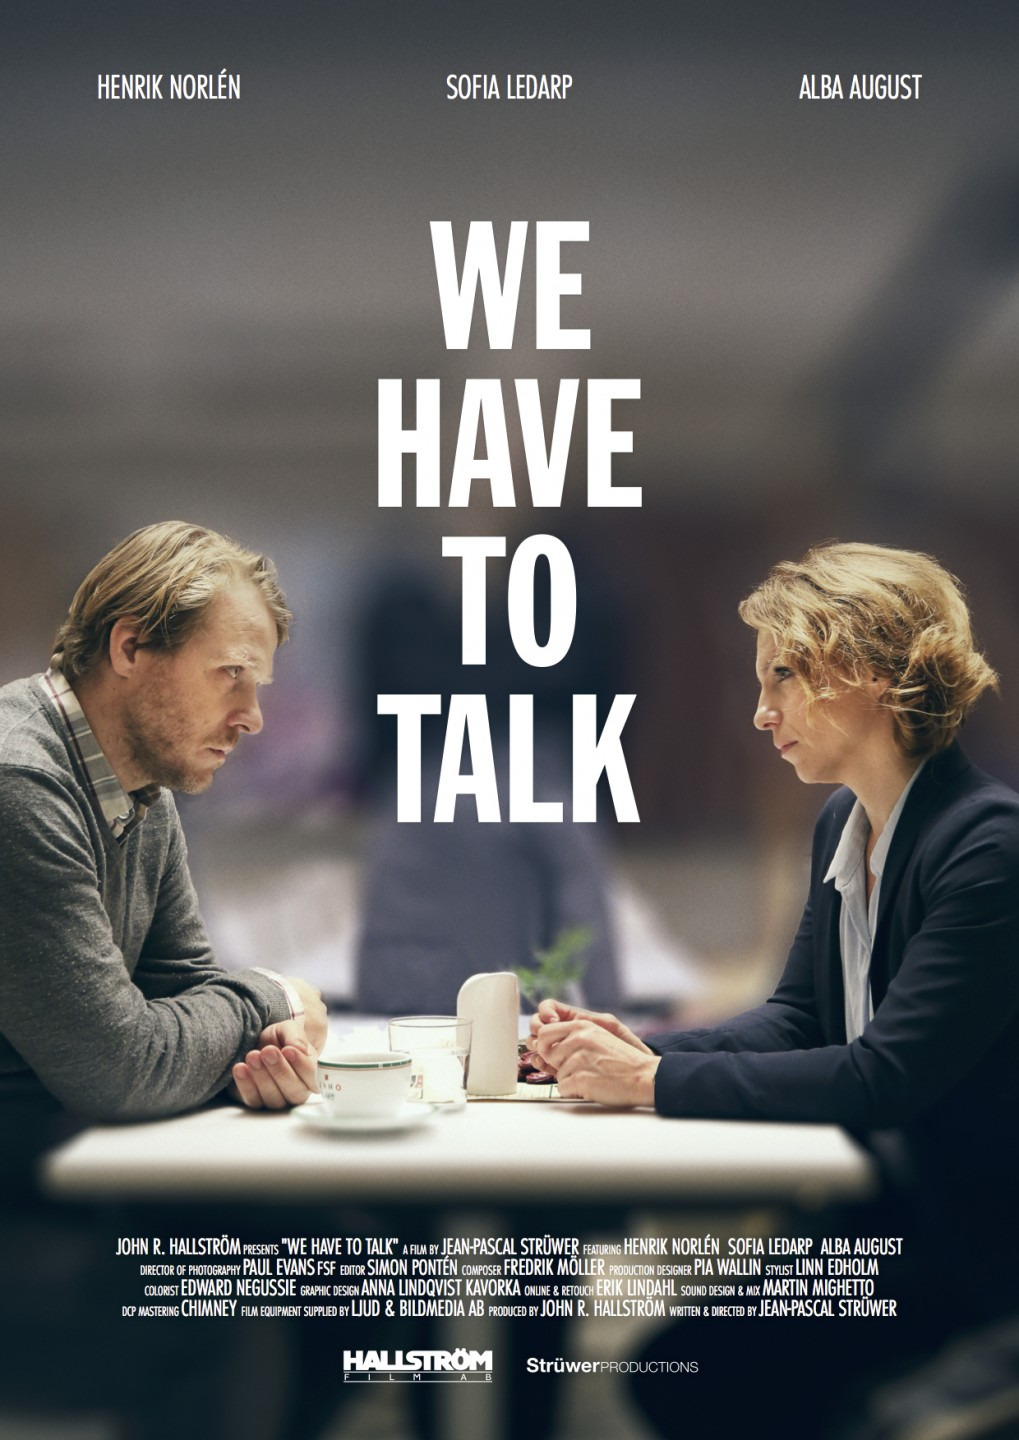 We have to talk poster